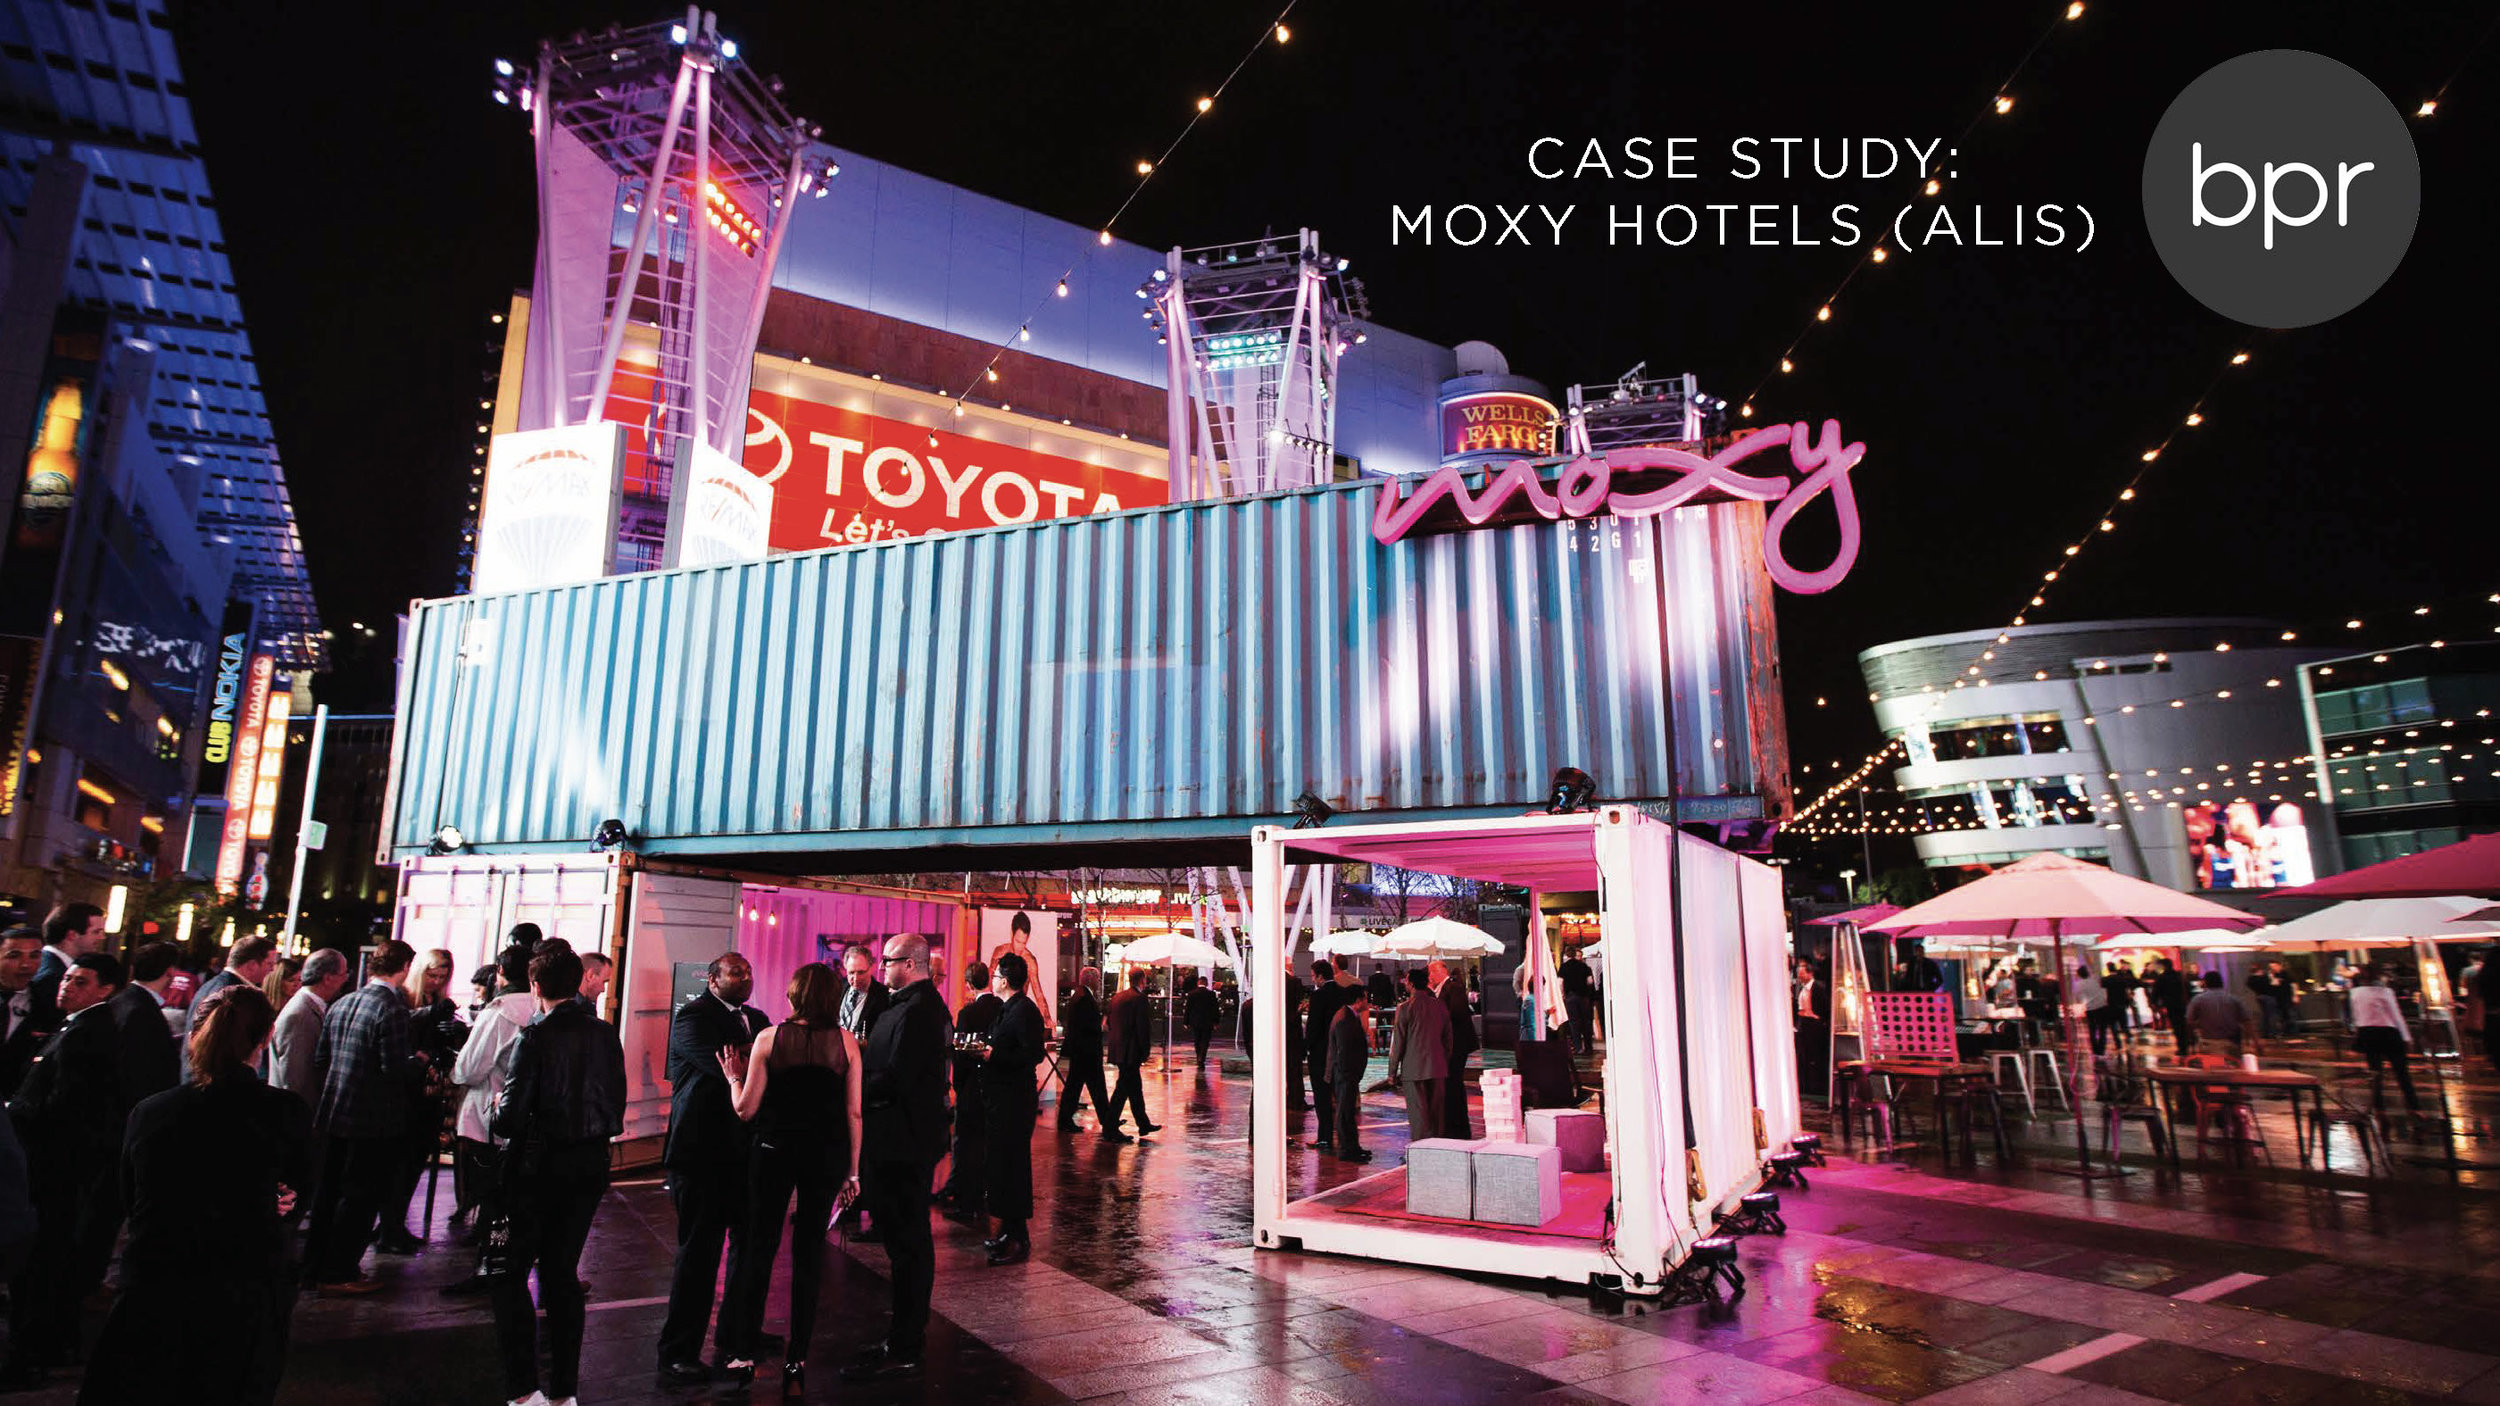 Moxy Alis Case Study_Page_1.jpg